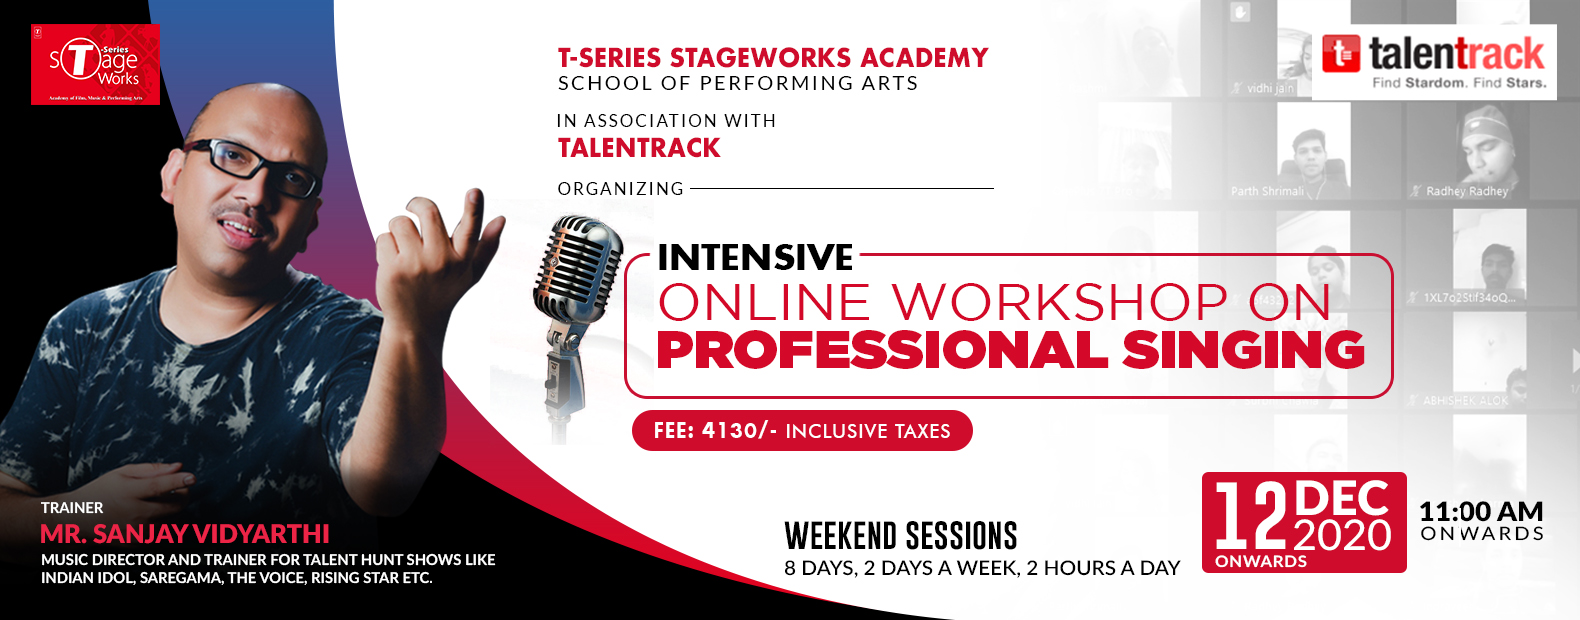 INTENSIVE ONLINE WORKSHOP ON PROFFESSIONAL SINGING, 28 NOV 2020 ONWARDS